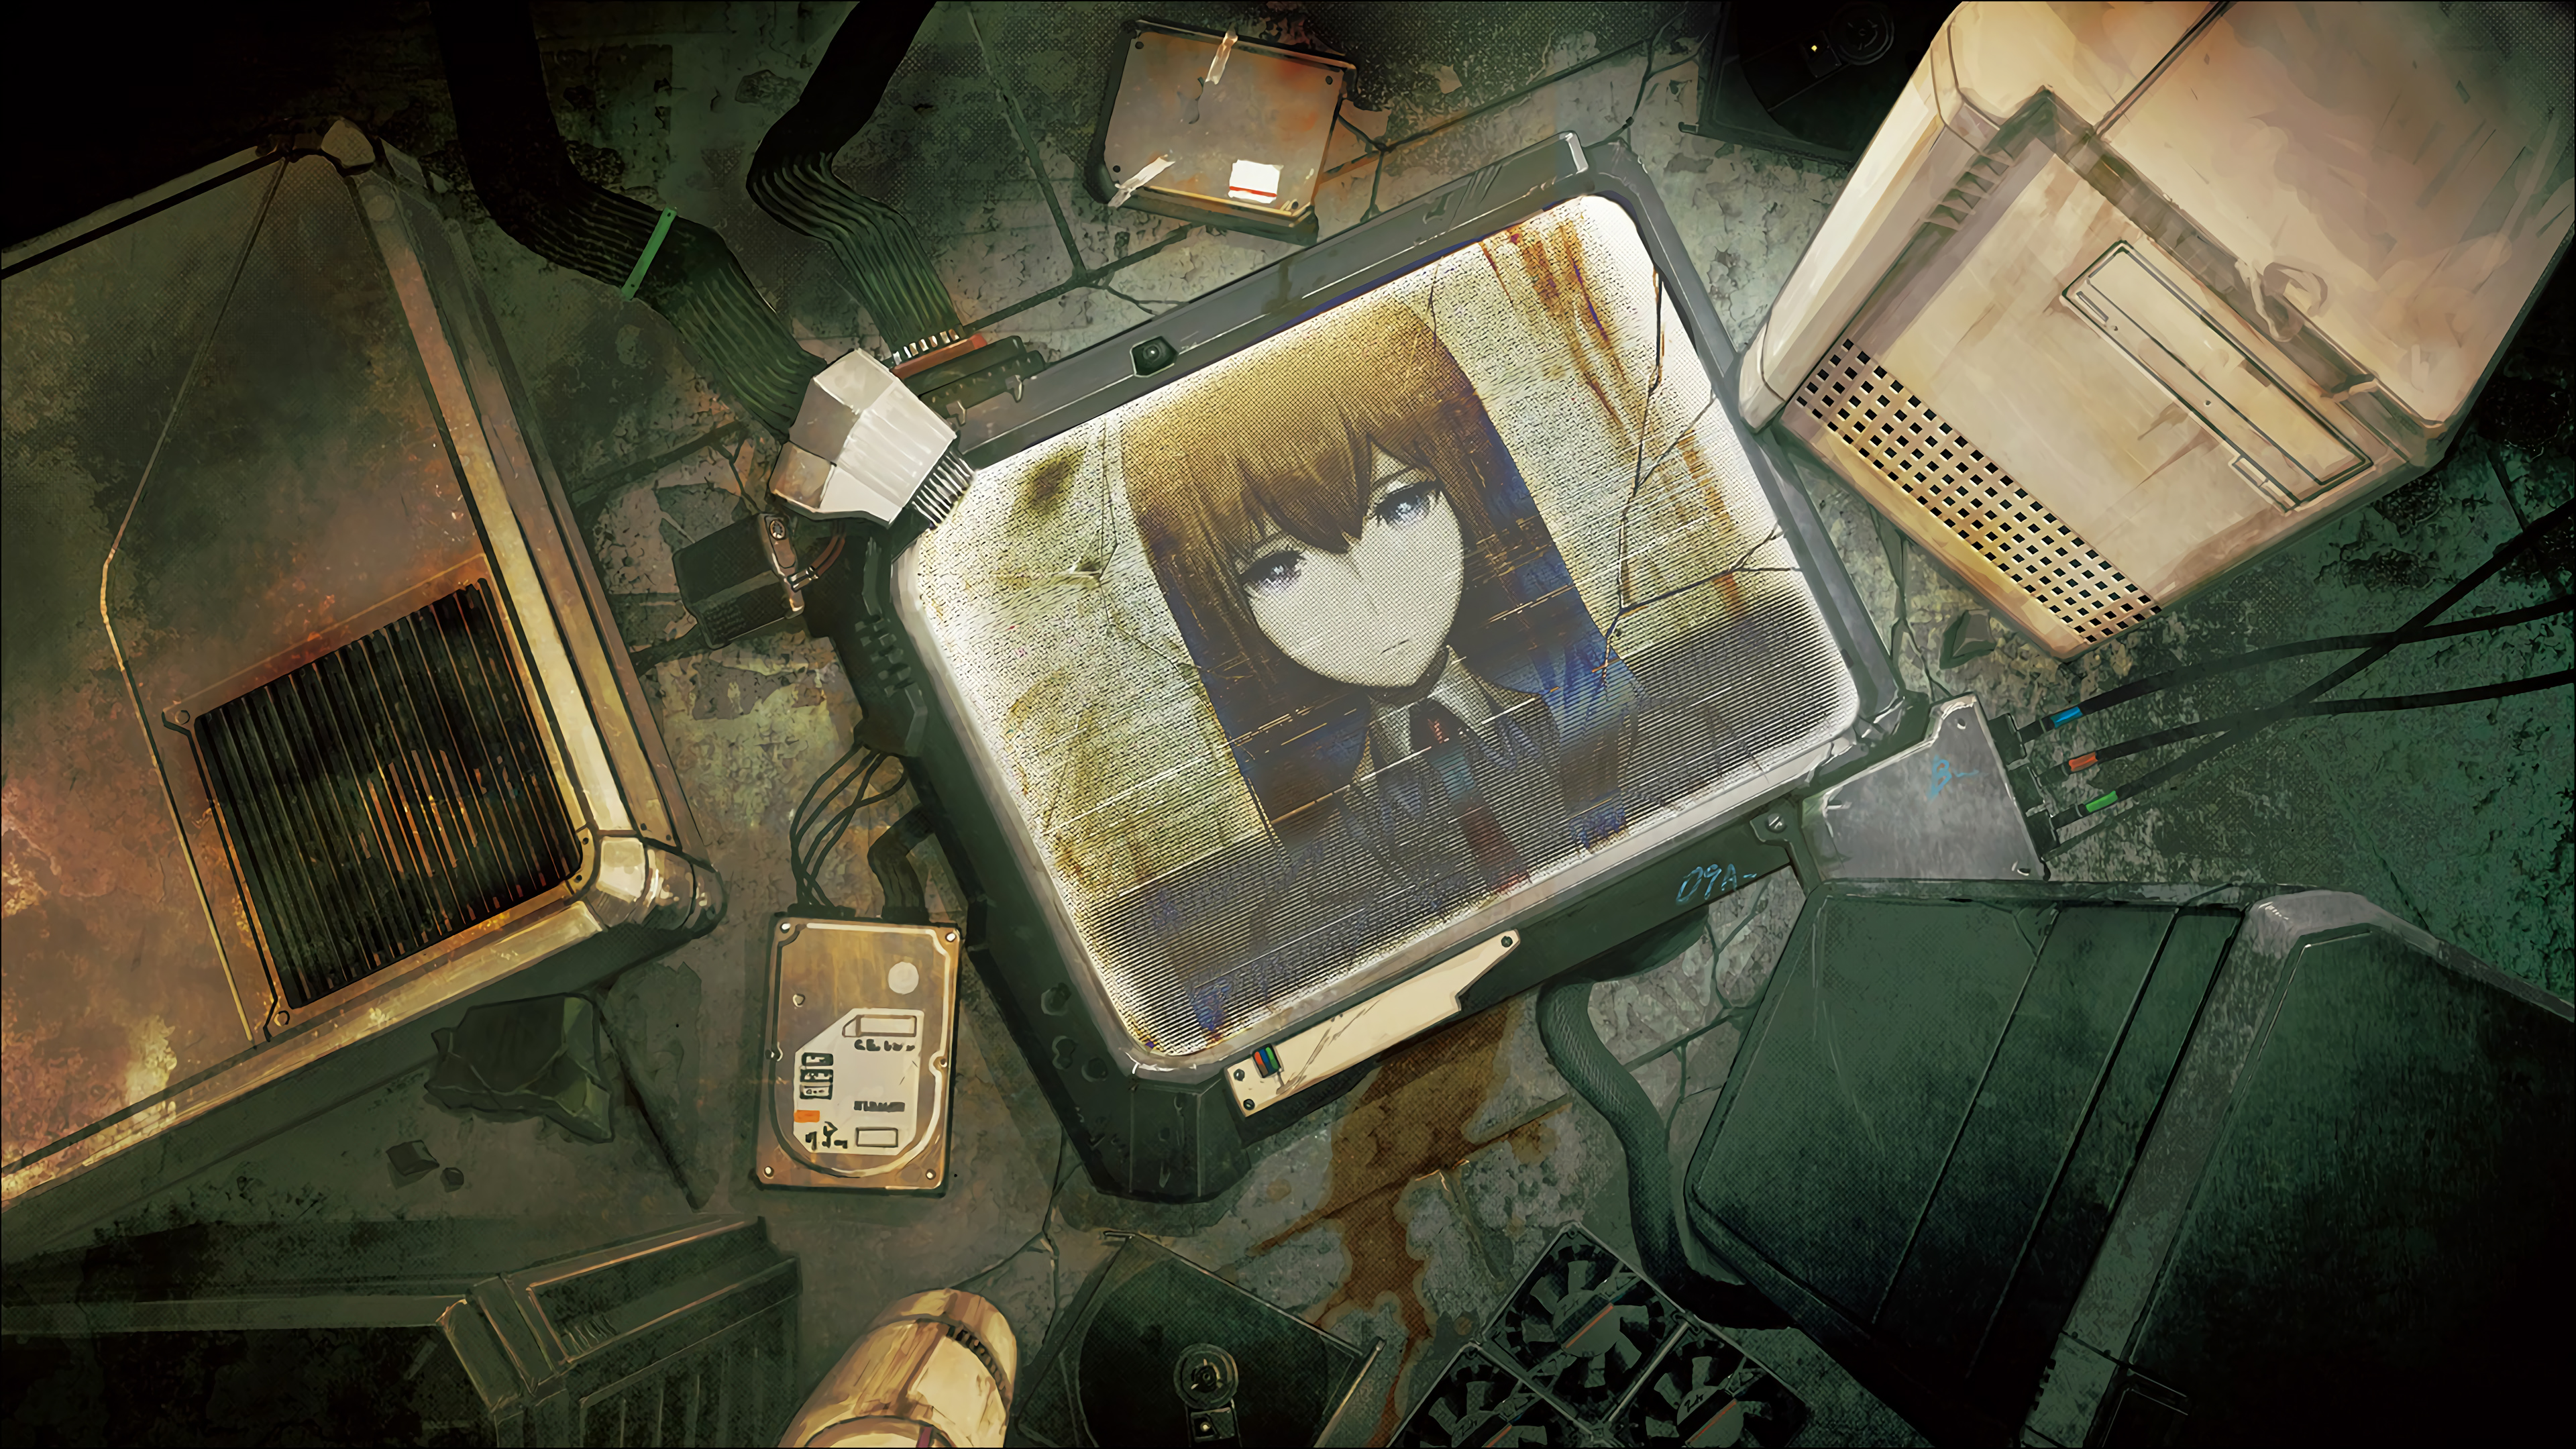 kurisu makise 4k 1547938681 - Kurisu Makise 4k - kurisu makise wallpapers, hd-wallpapers, anime wallpapers, anime girl wallpapers, 4k-wallpapers